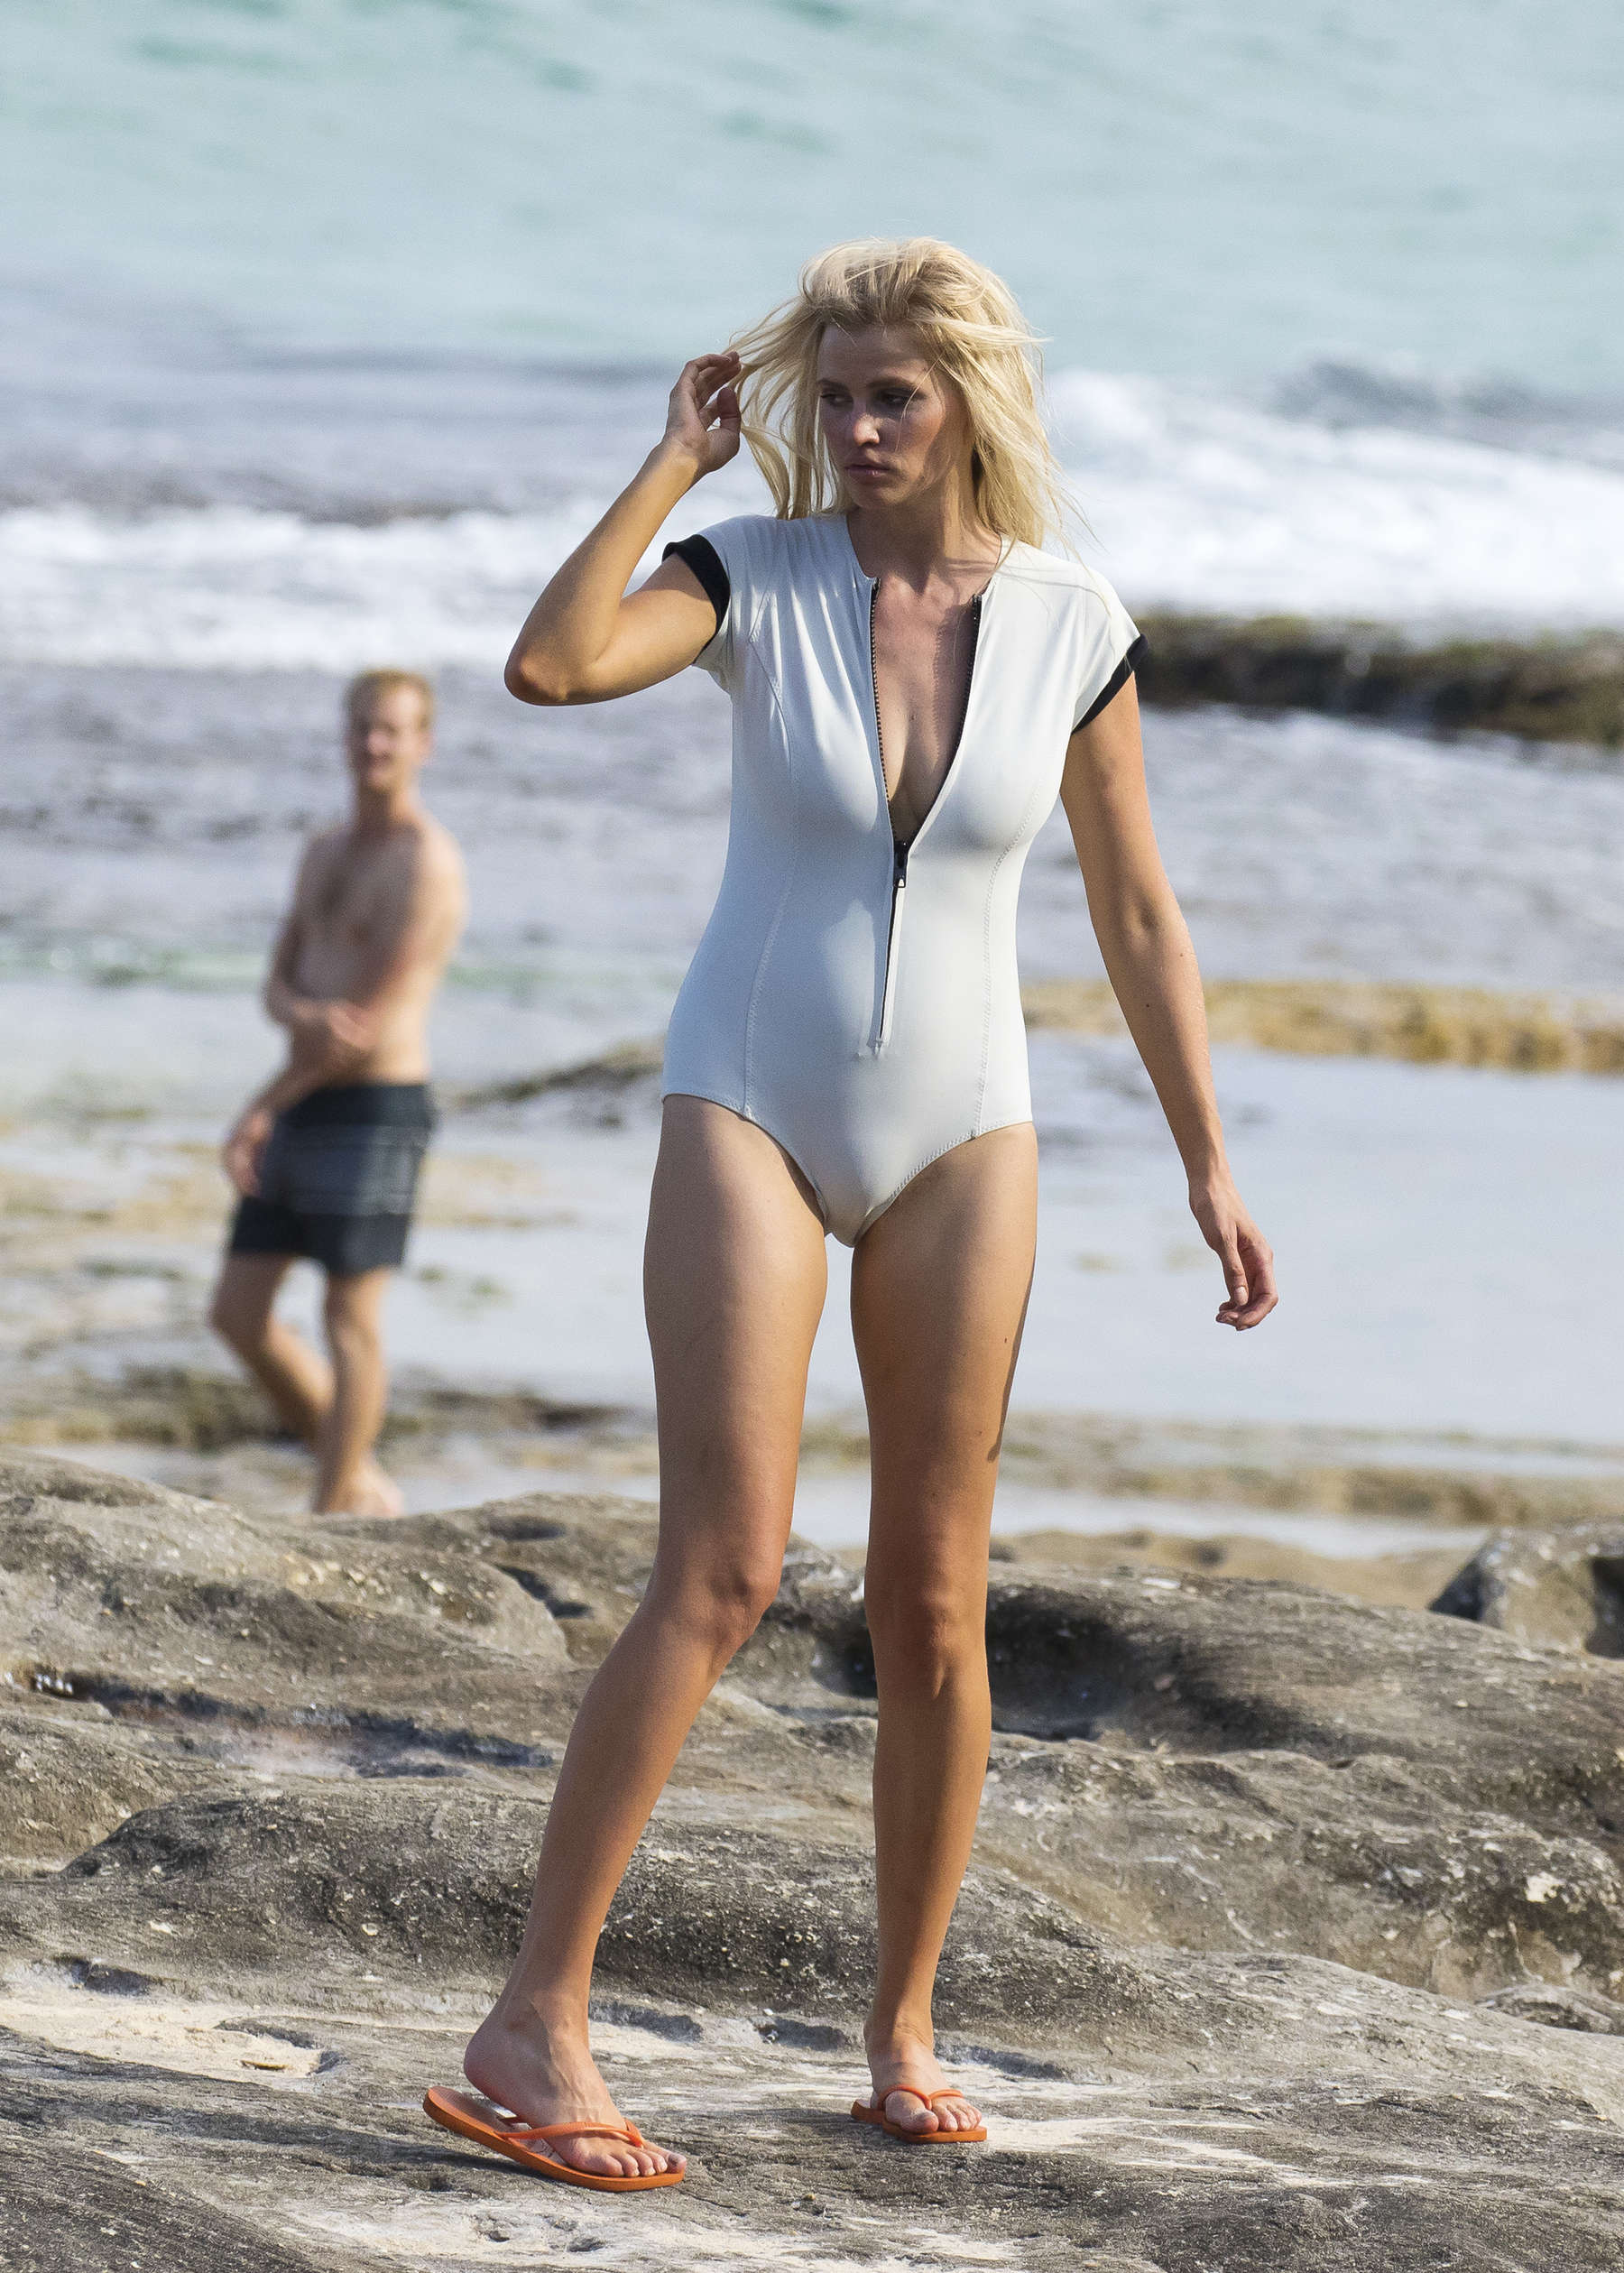 Lara Stone Vogue Photoshoot at Bondi Beach in Sydney